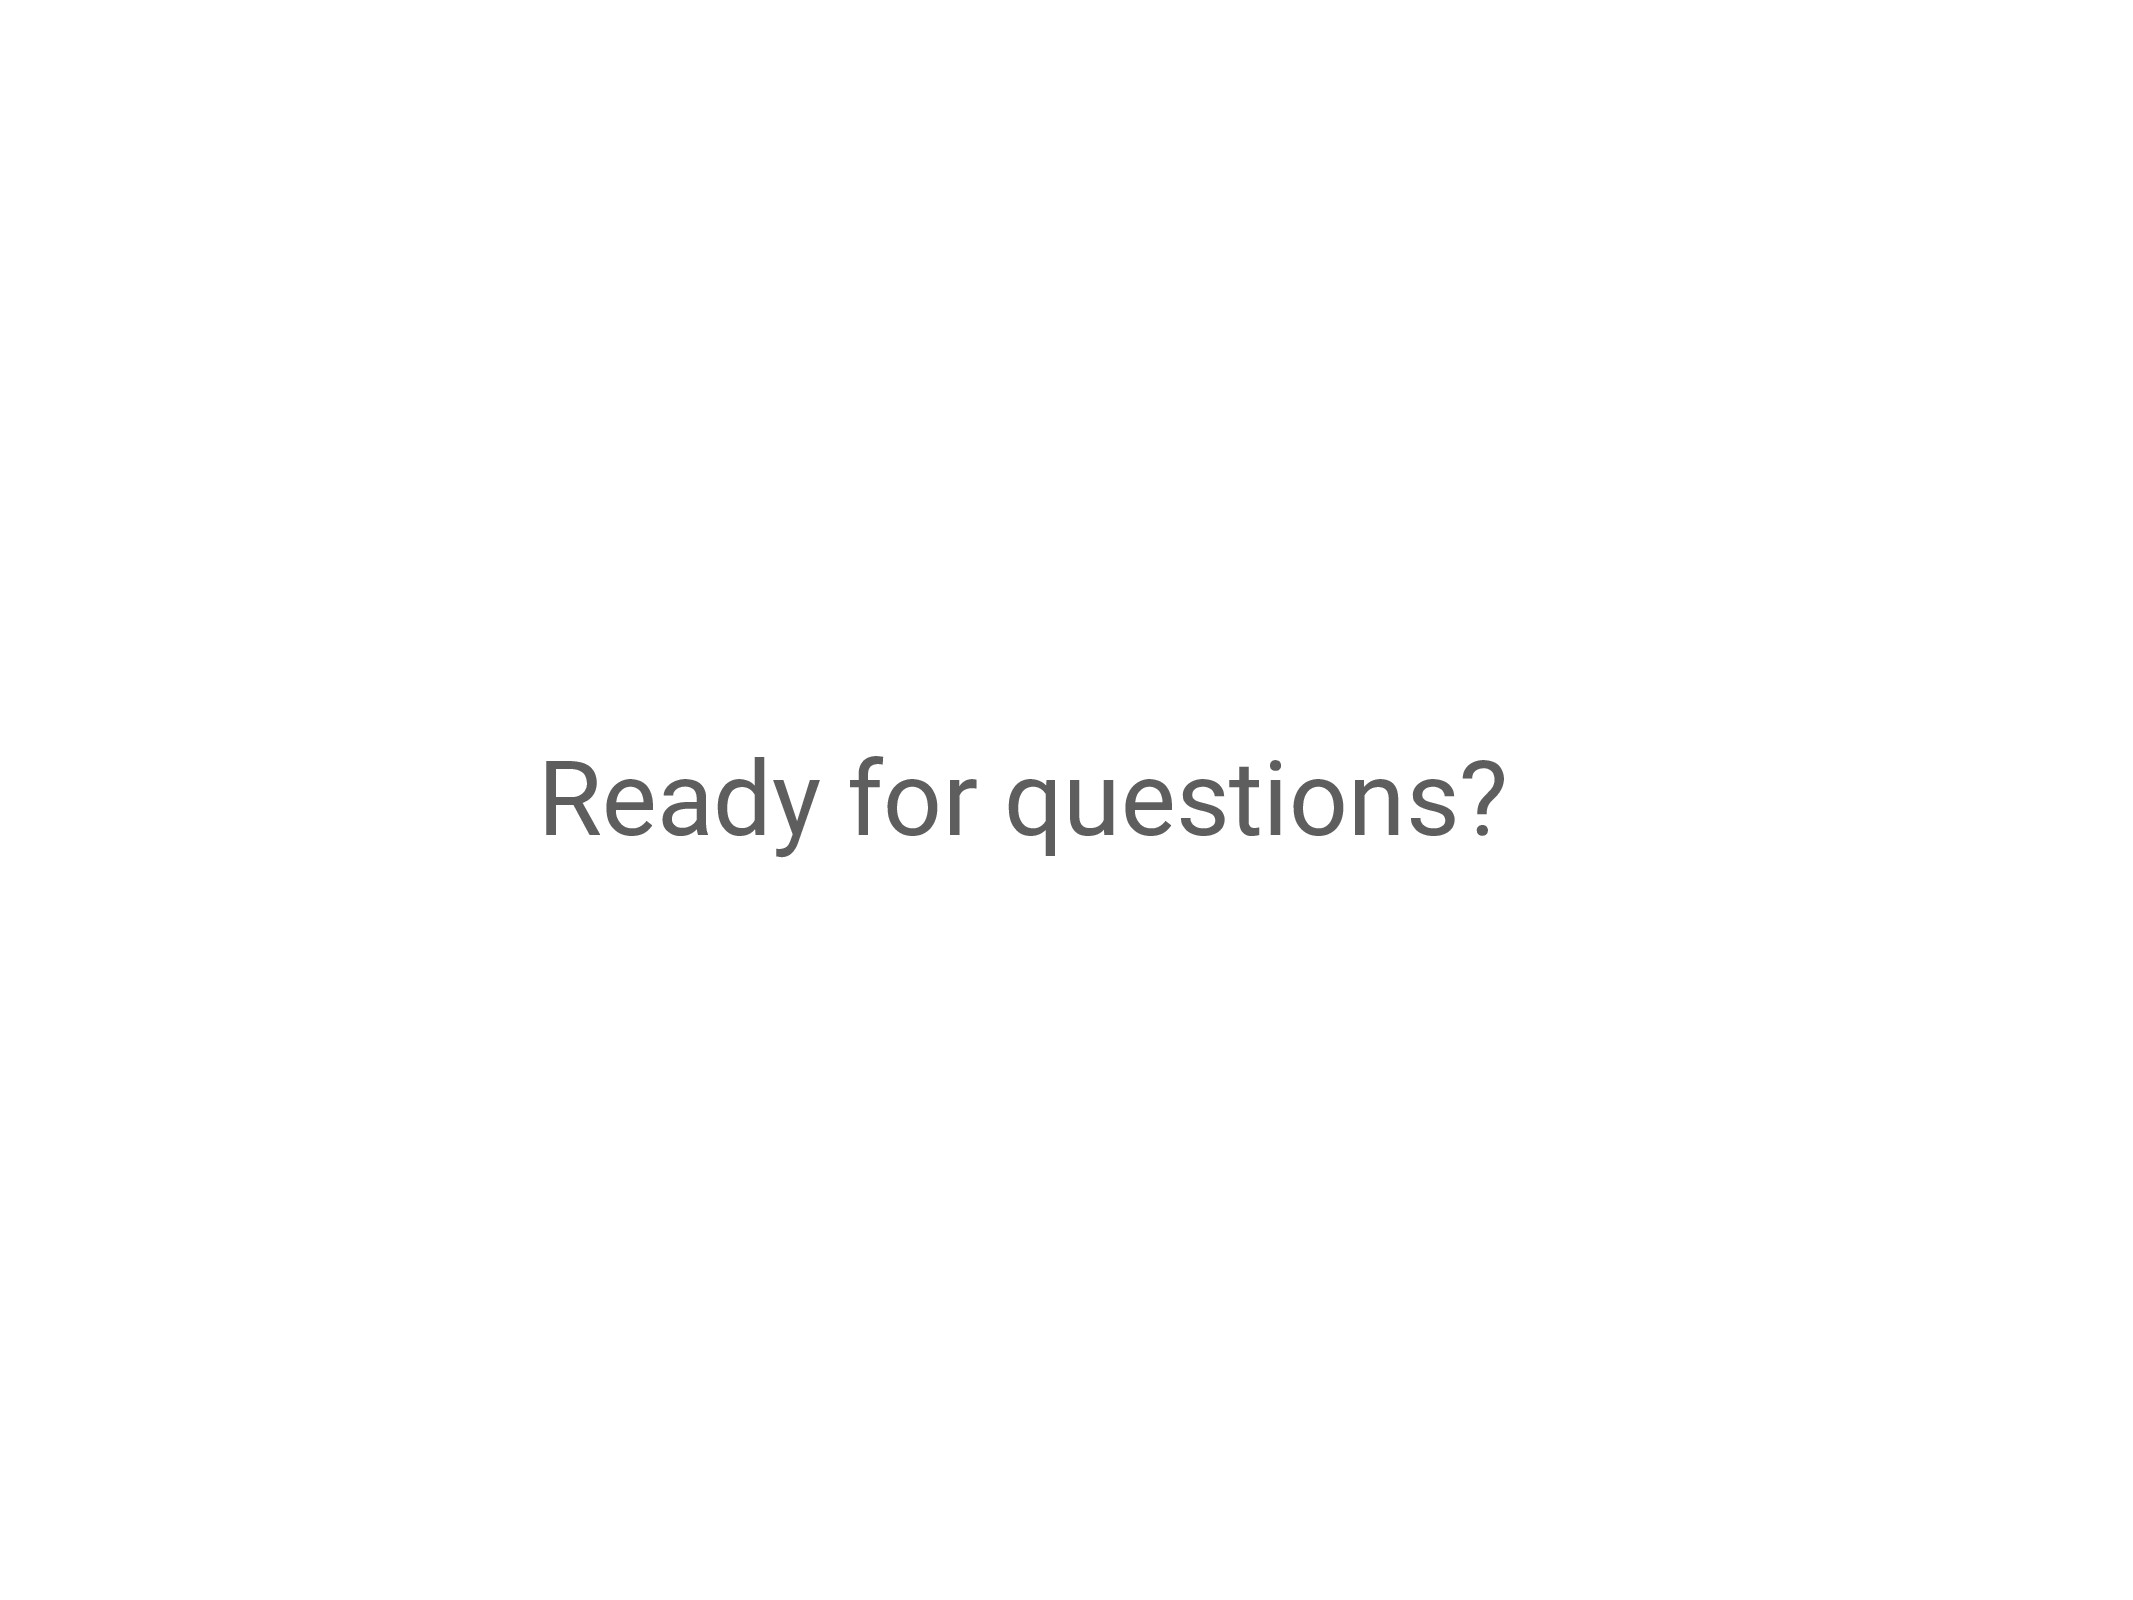 Ready for questions?